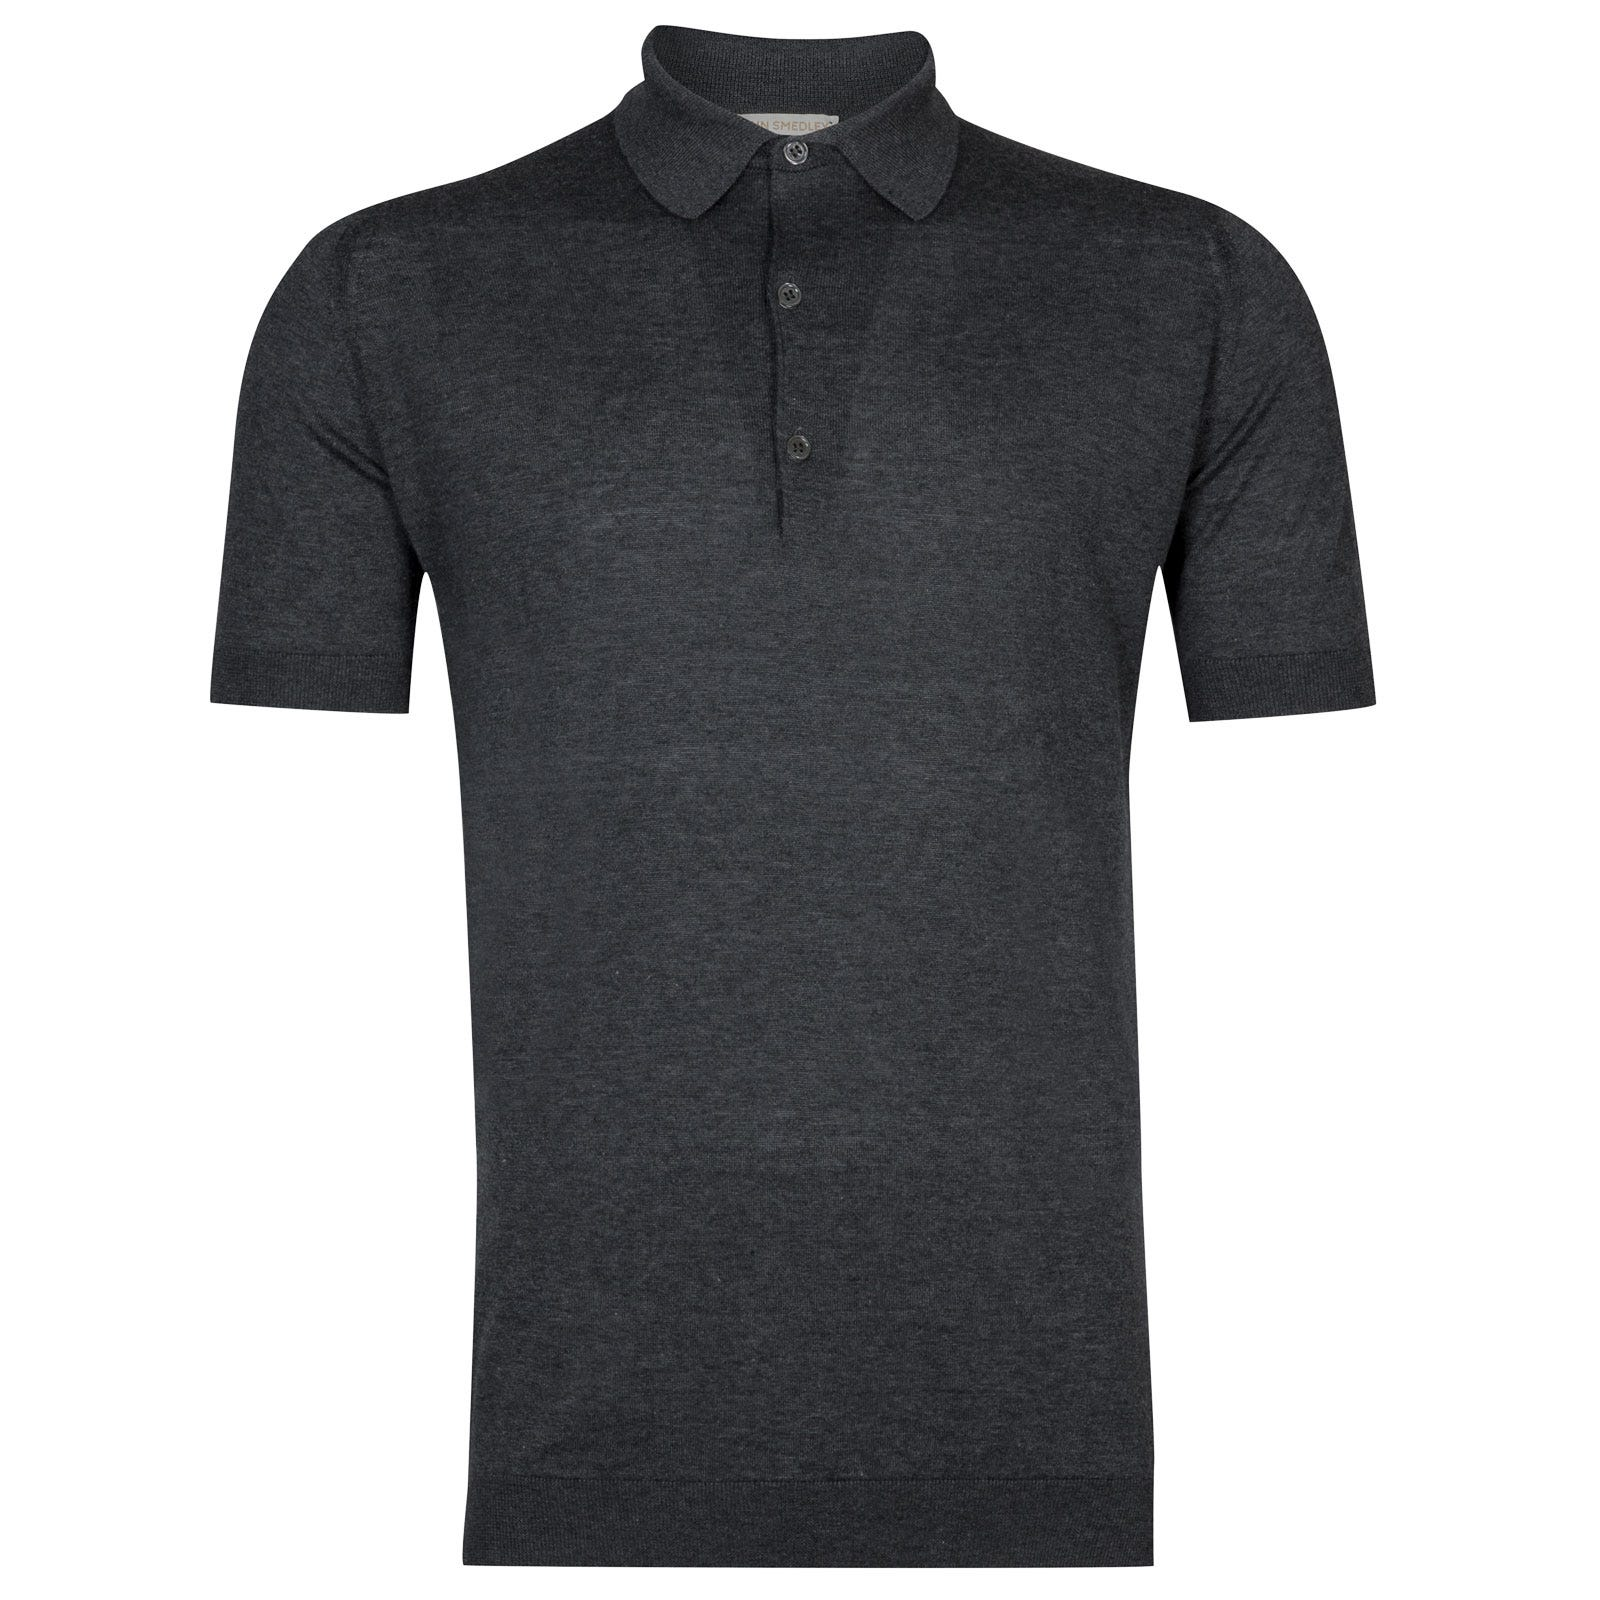 John Smedley Haddon Sea Island Cotton and Cashmere Shirt in Charcoal-L